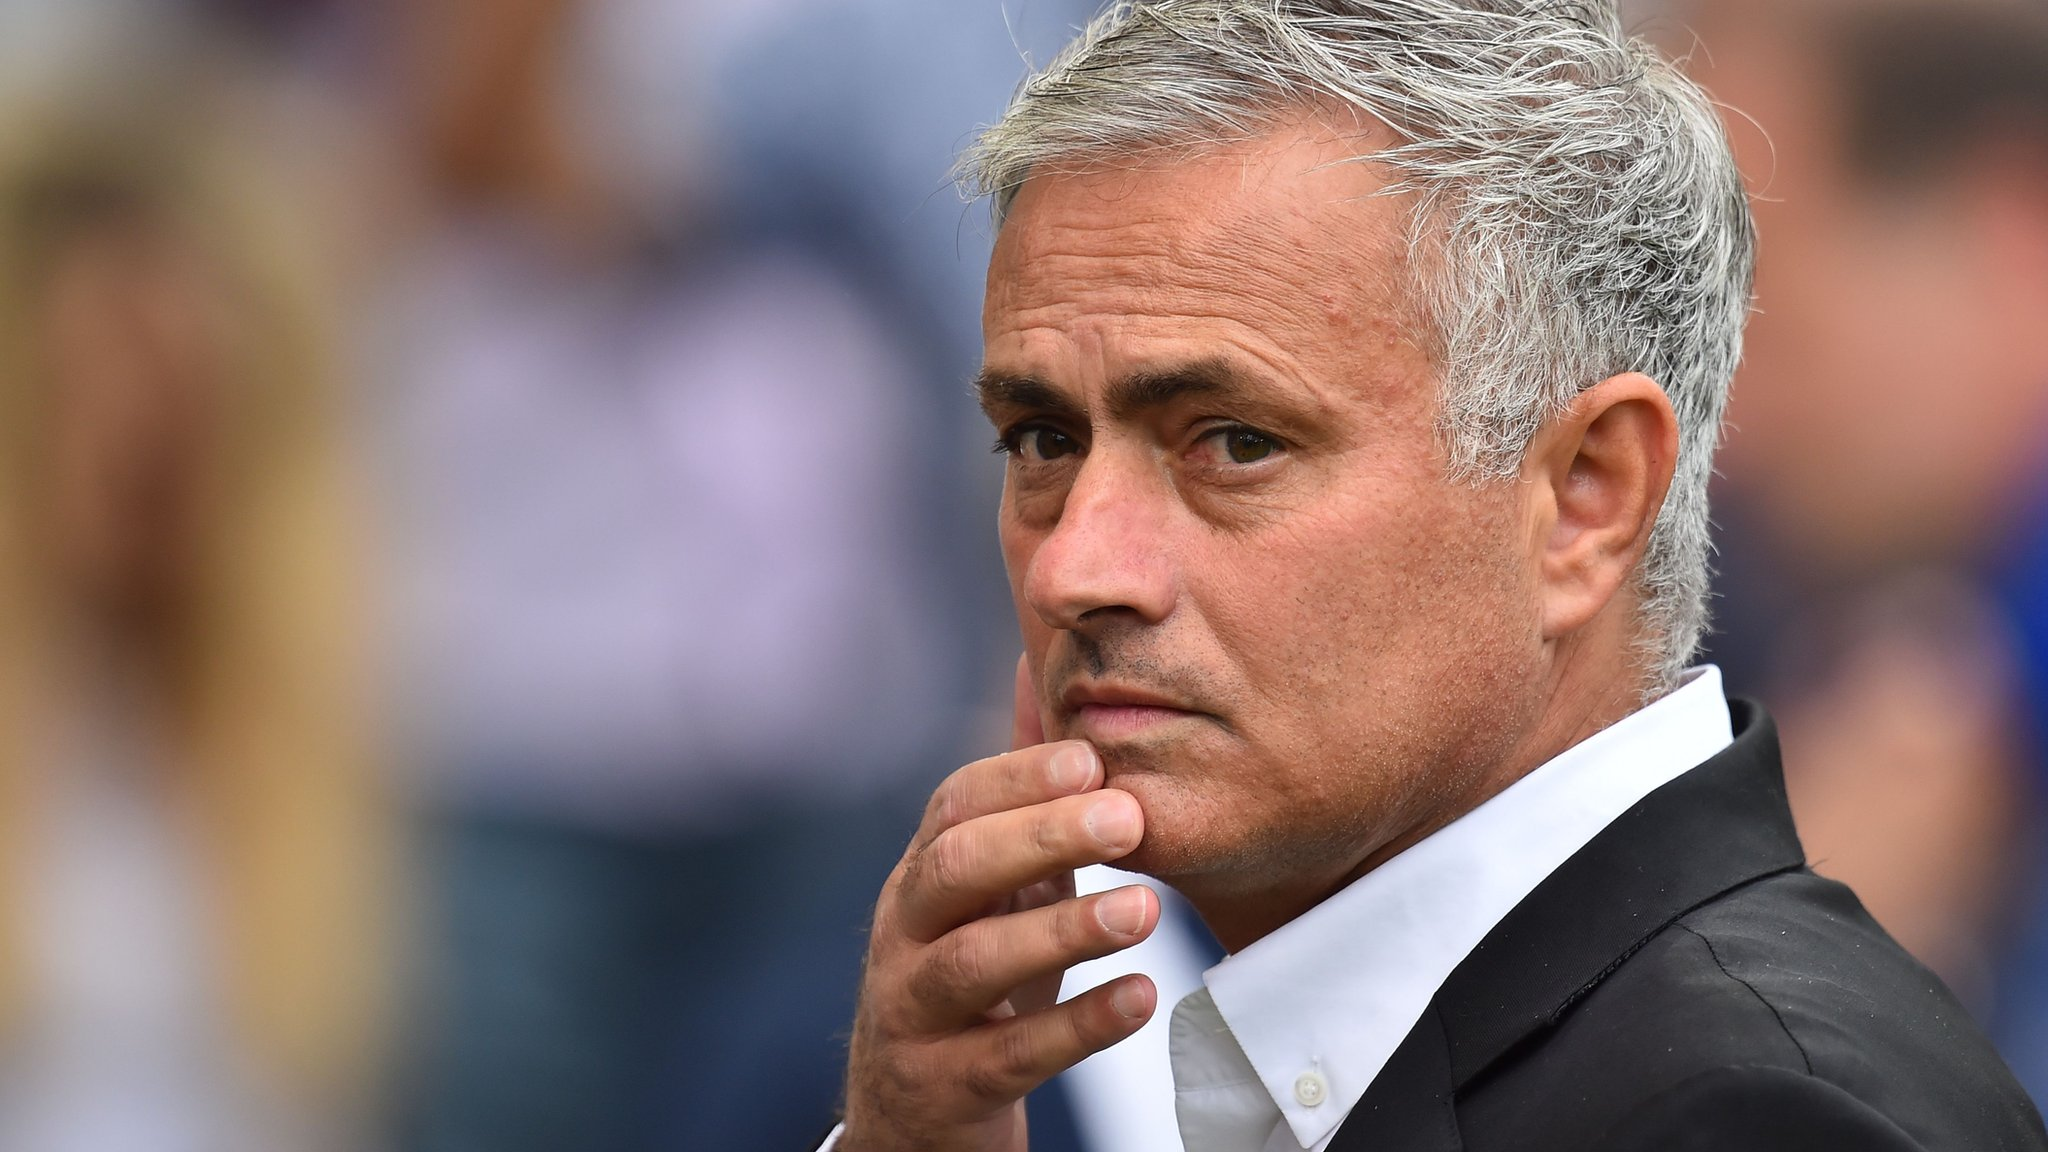 Man Utd: Jose Mourinho gets board's backing, club not considering Zinedine Zidane